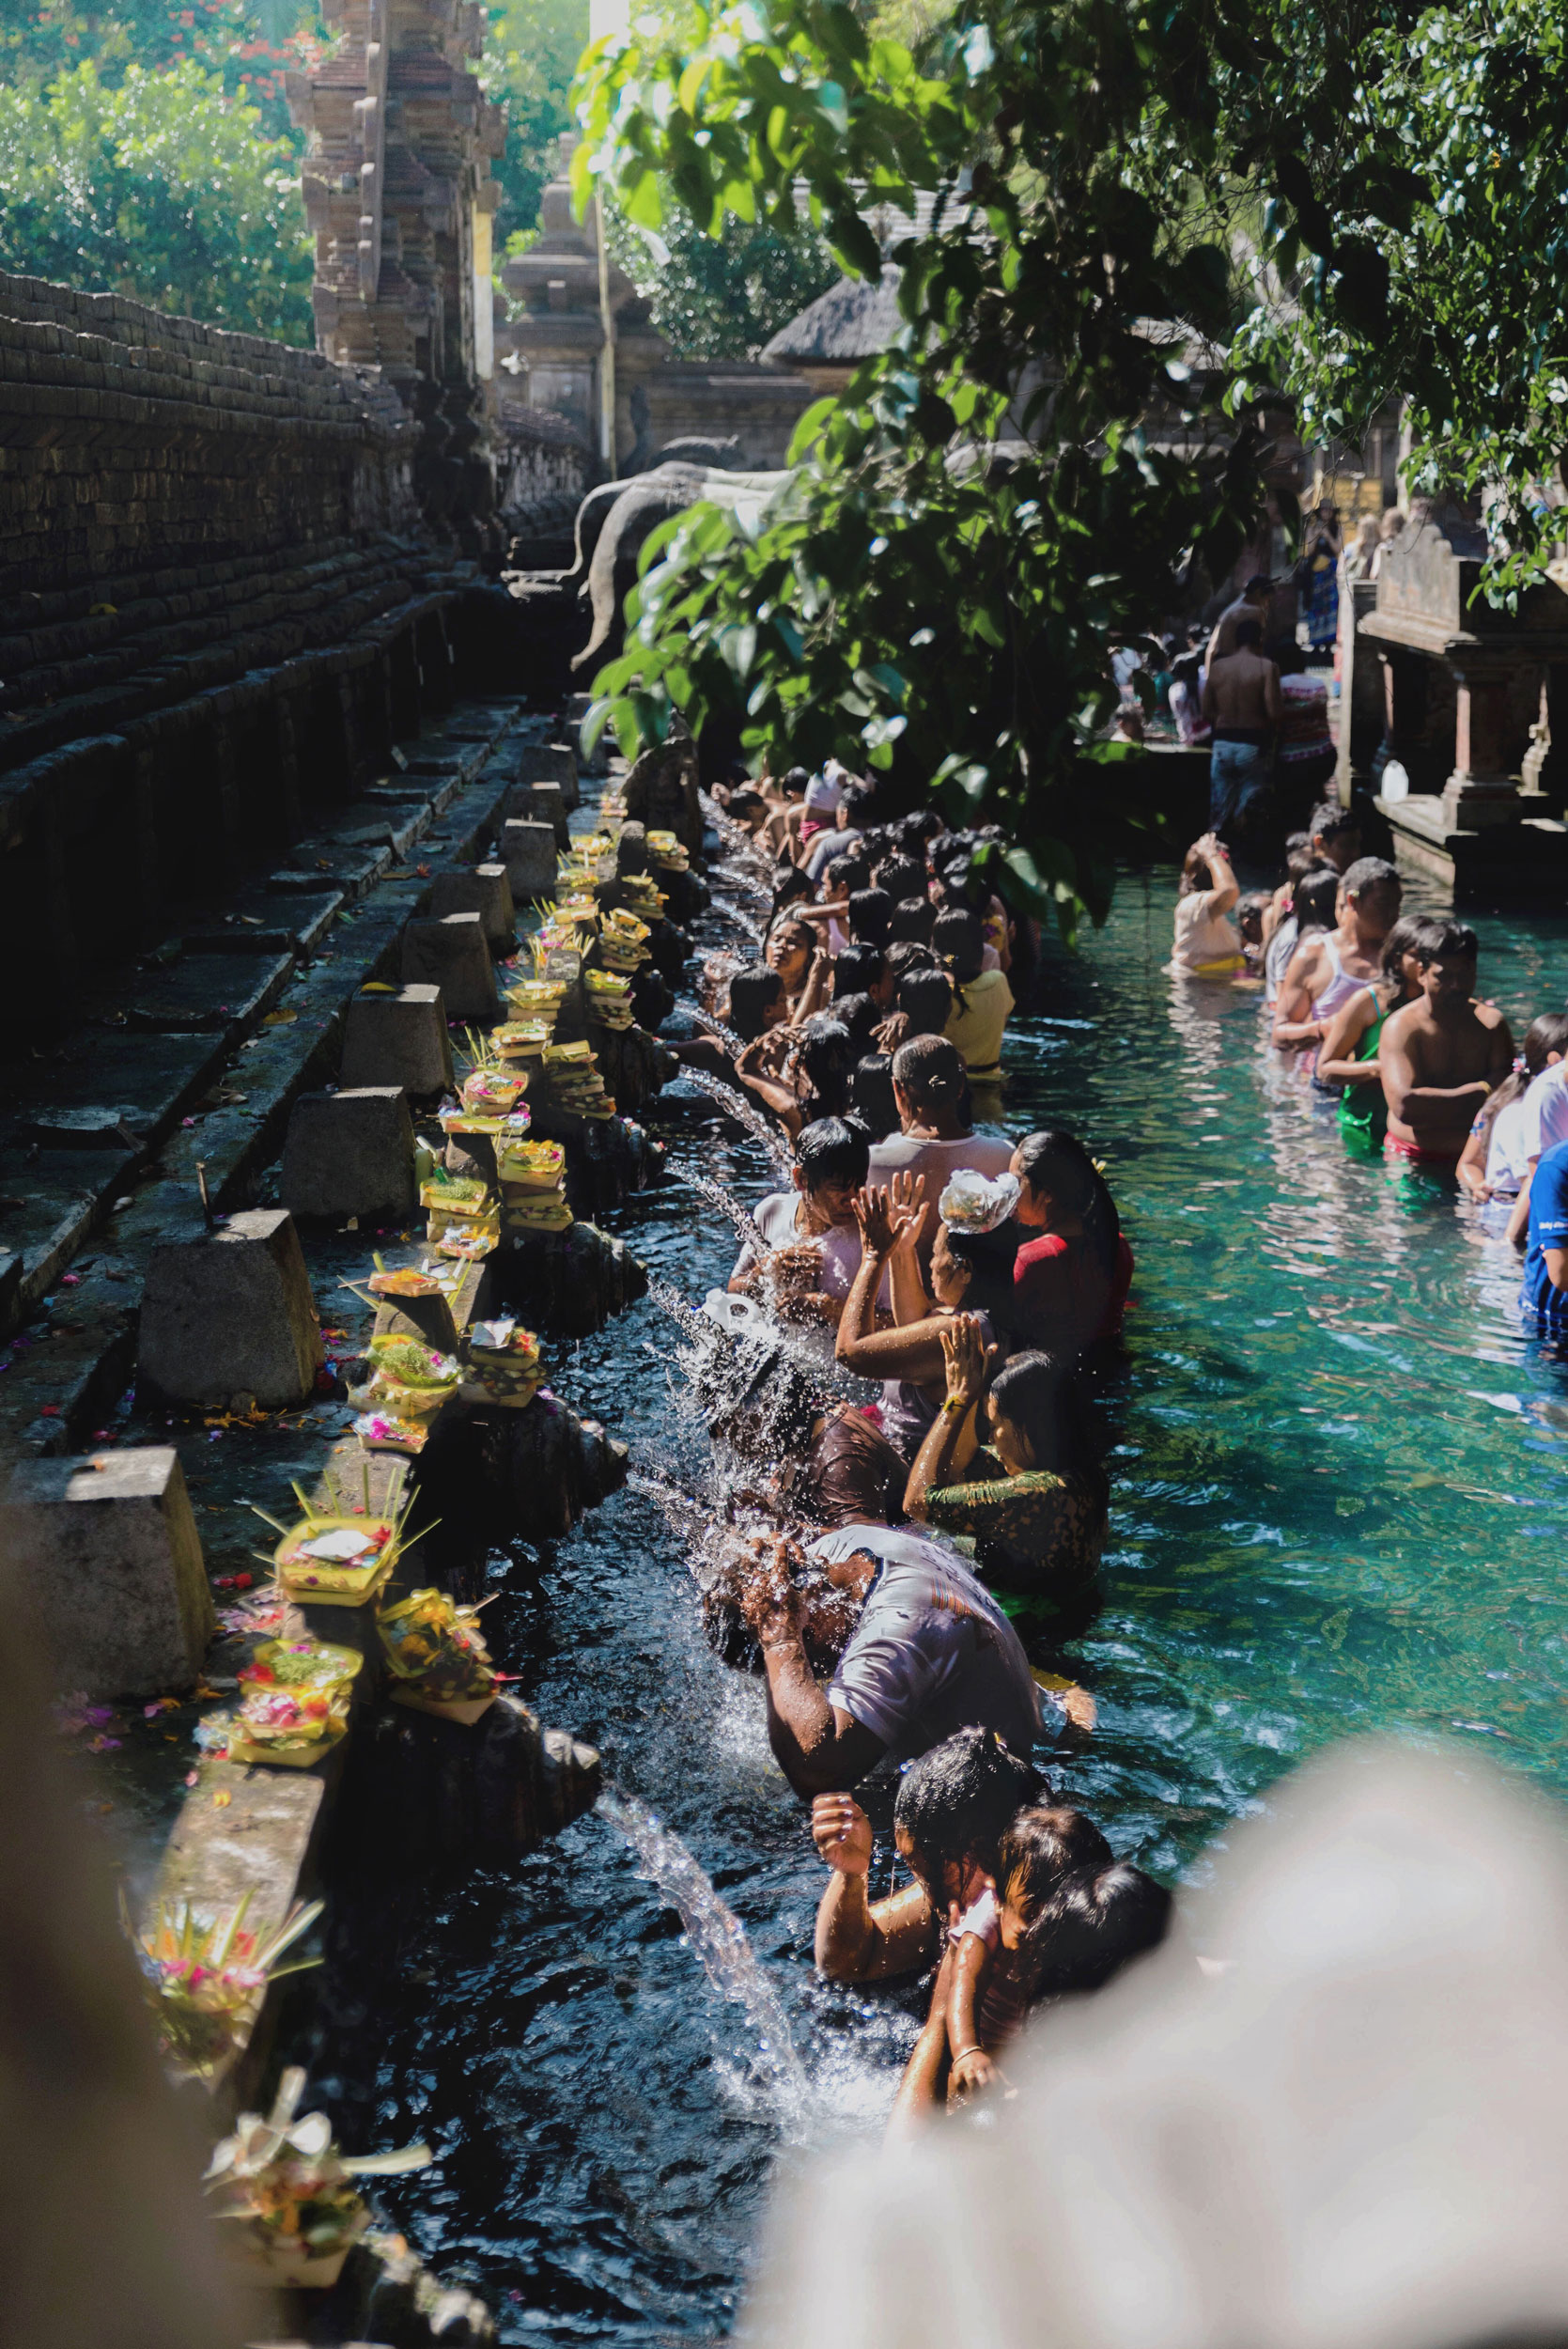 People bathing at the Tirta Empul water temple in Bali